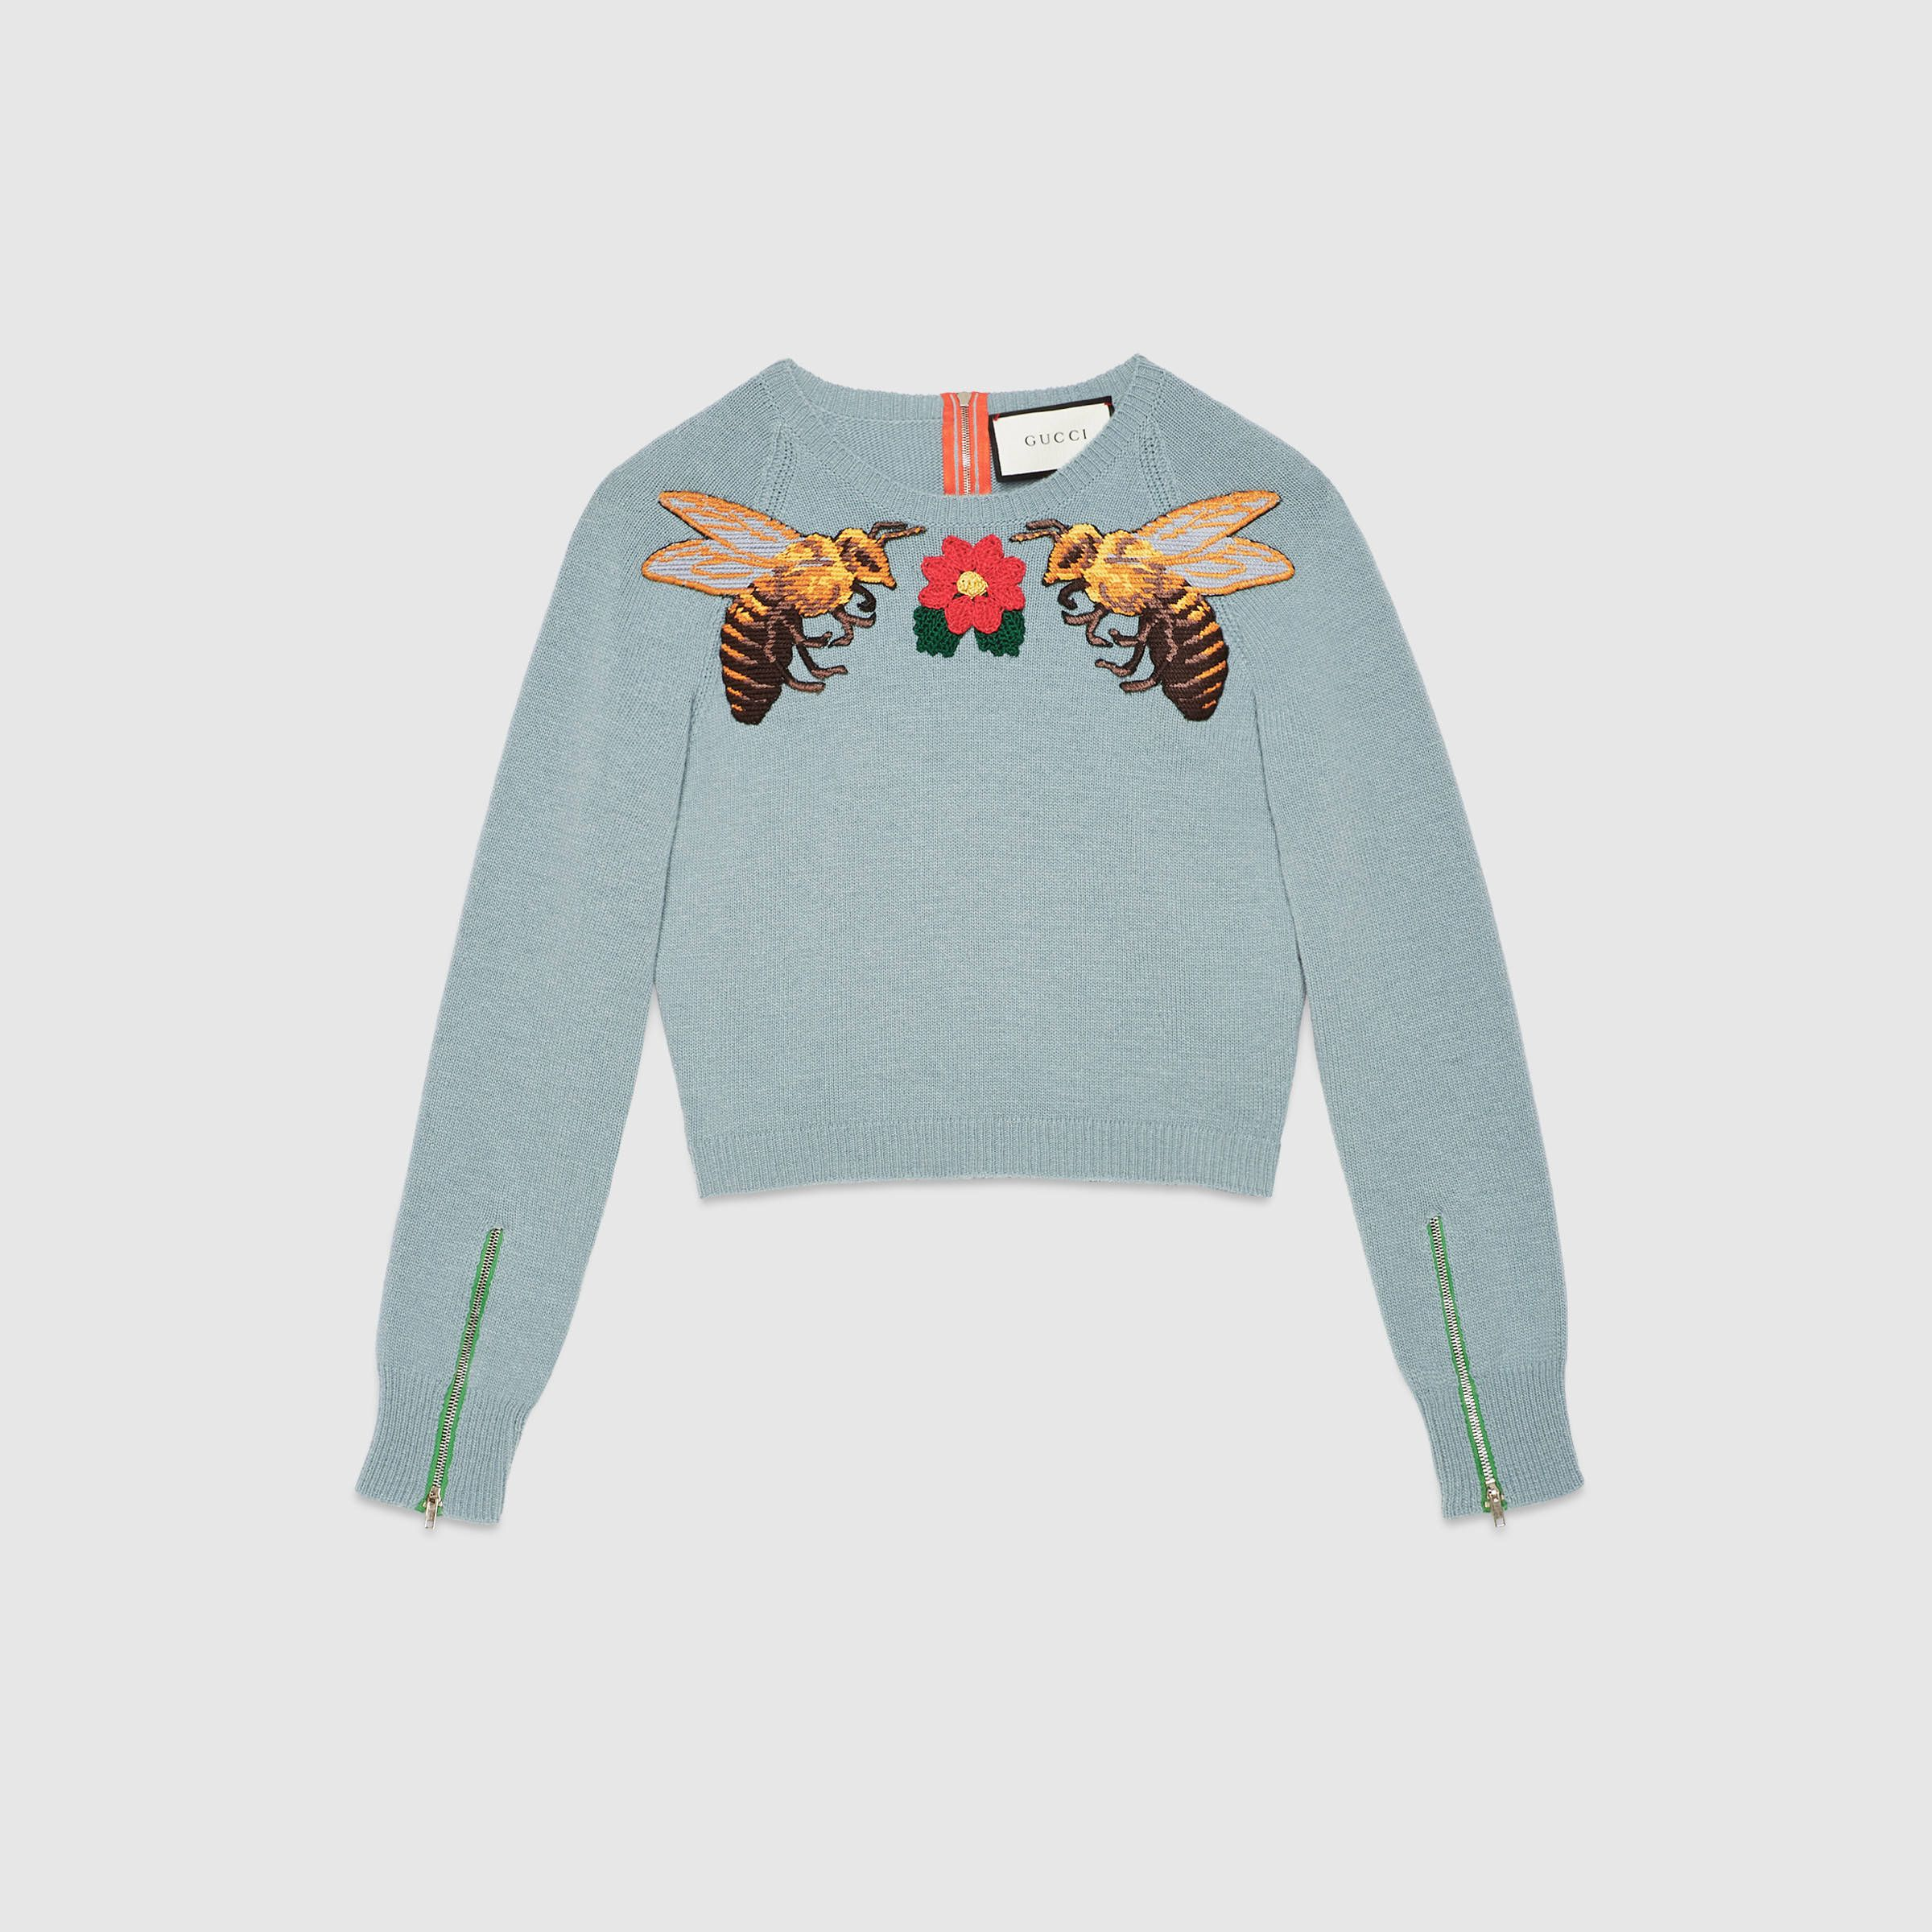 Gucci - Embroidered hoodie - 219453